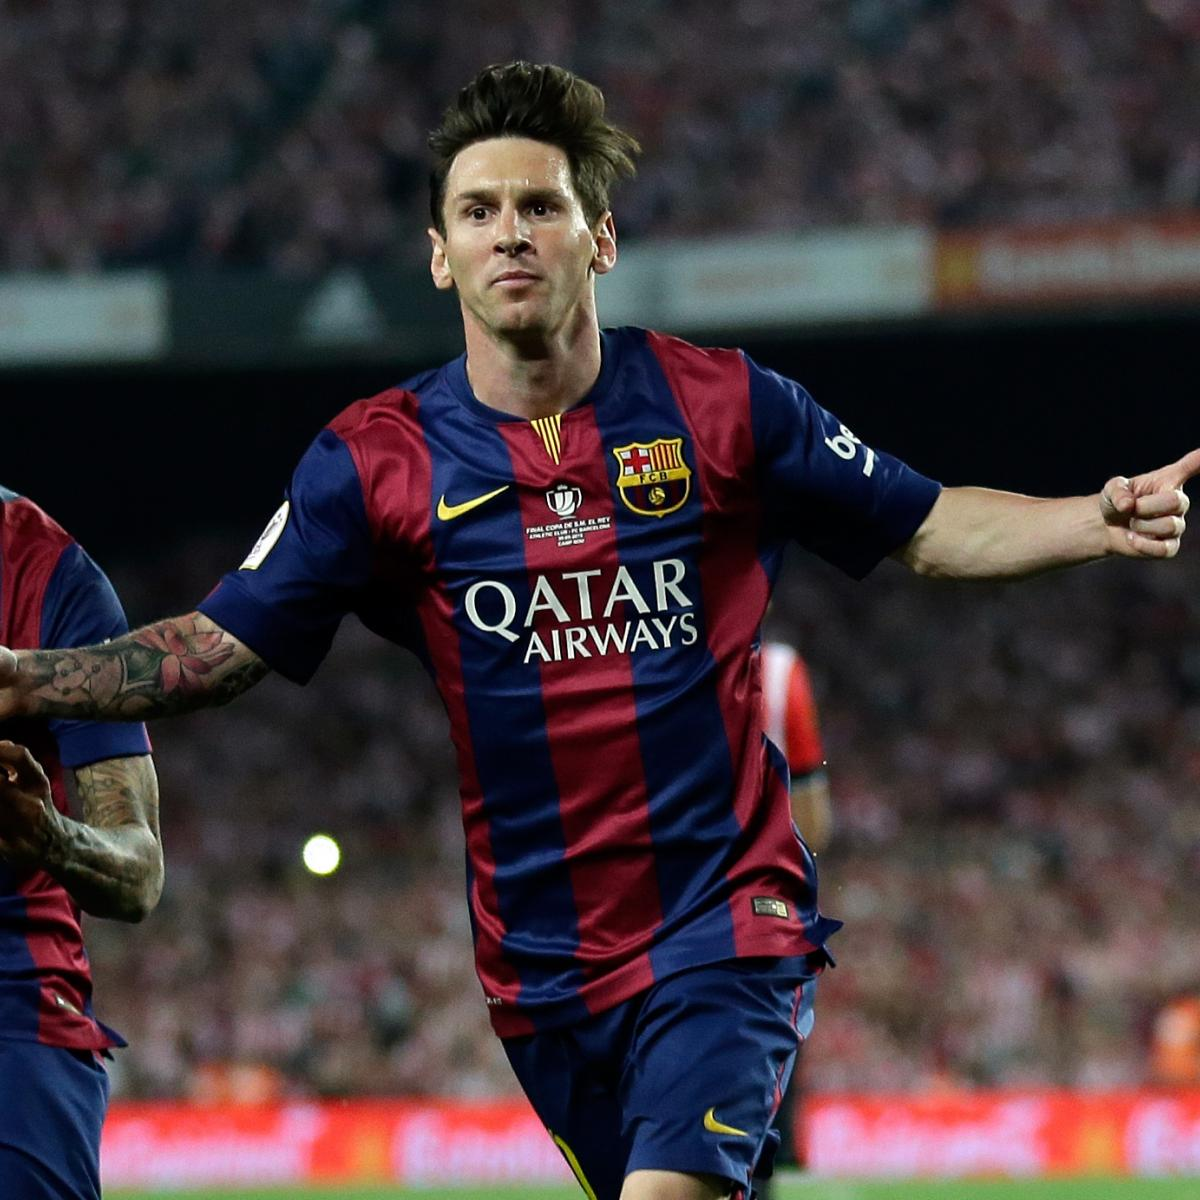 Barcelona Fail To Agree Qatar Airways Shirt Sponsor Reportedly Eye Record Deal Bleacher Report Latest News Videos And Highlights